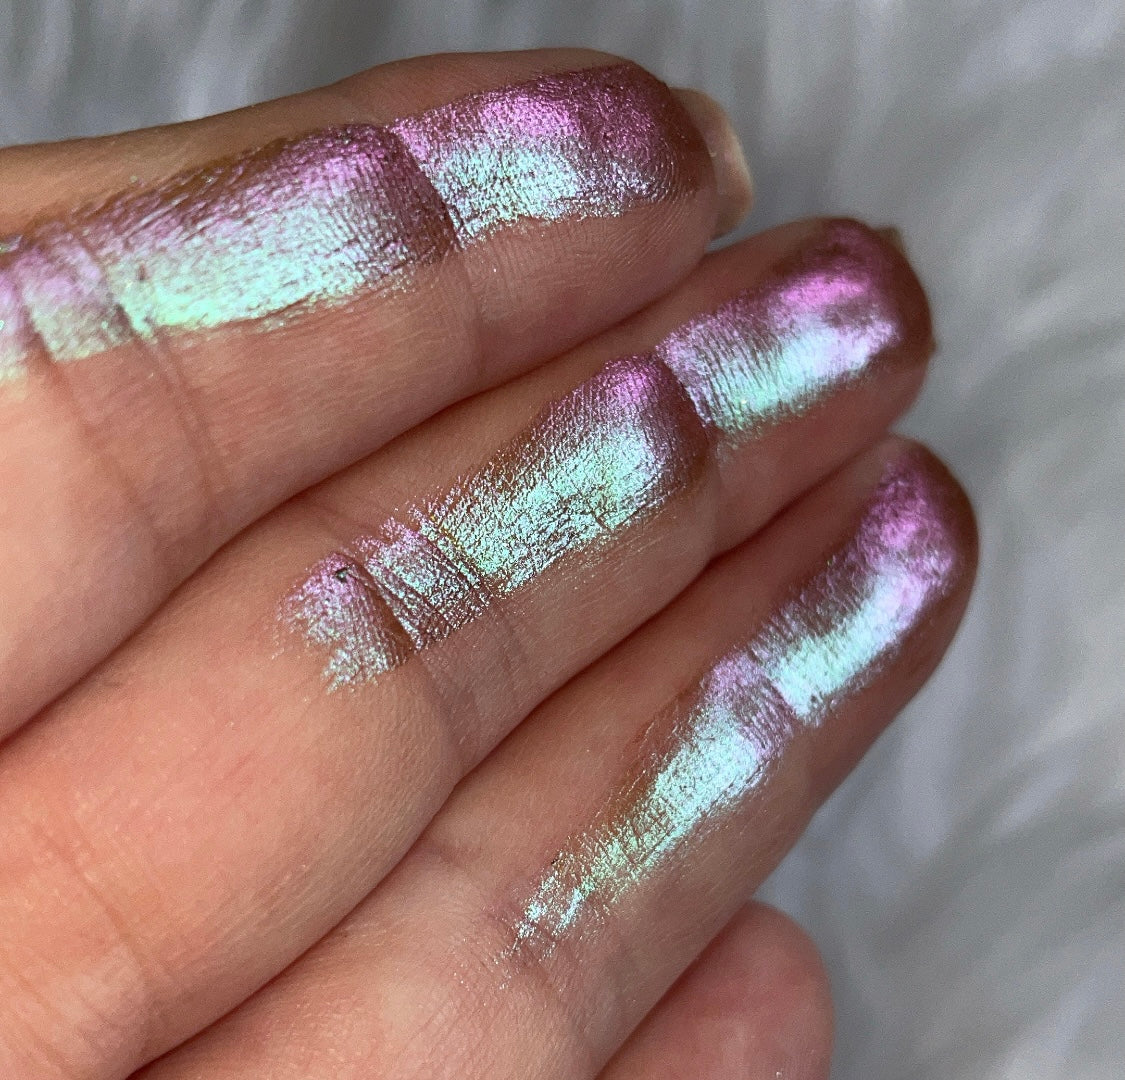 PIXIE POWDER chameleon glow powder